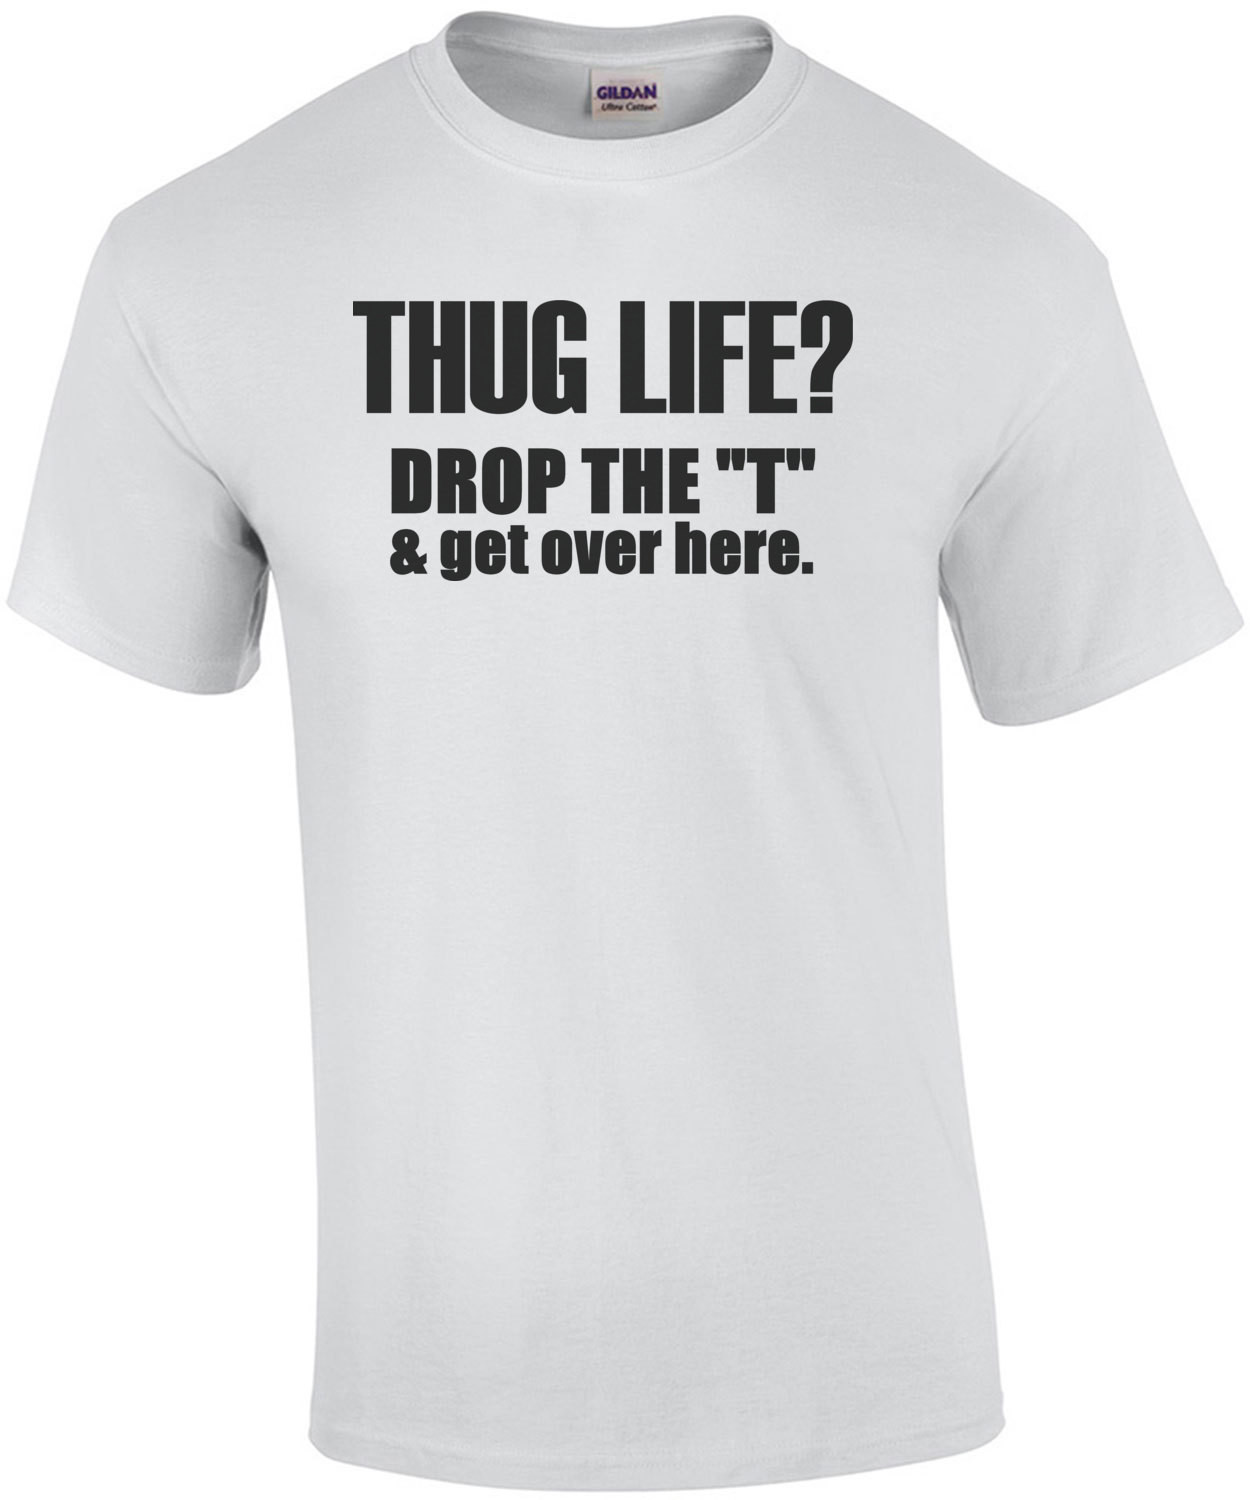 Thug life? Drop the T and get over here. T-Shirt